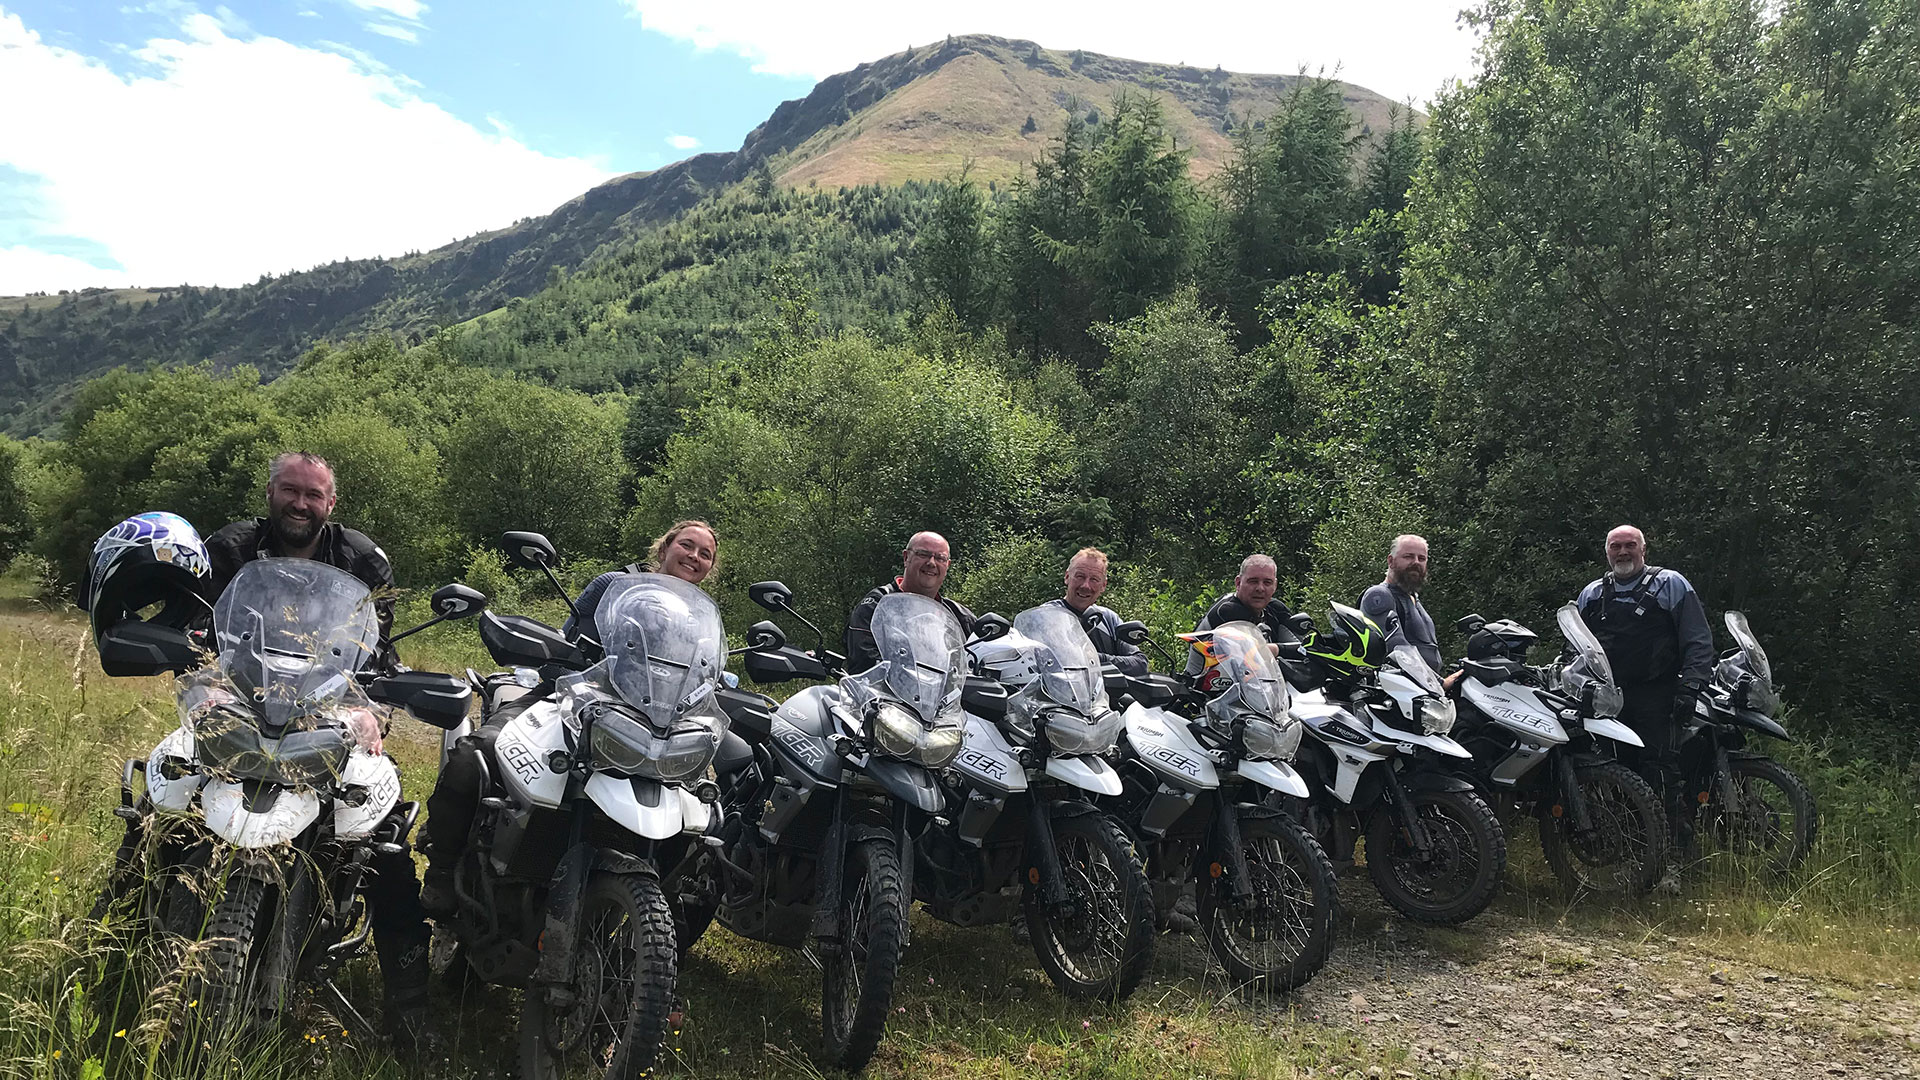 A group of riders on Triumph Tiger motorcycles during an experience day